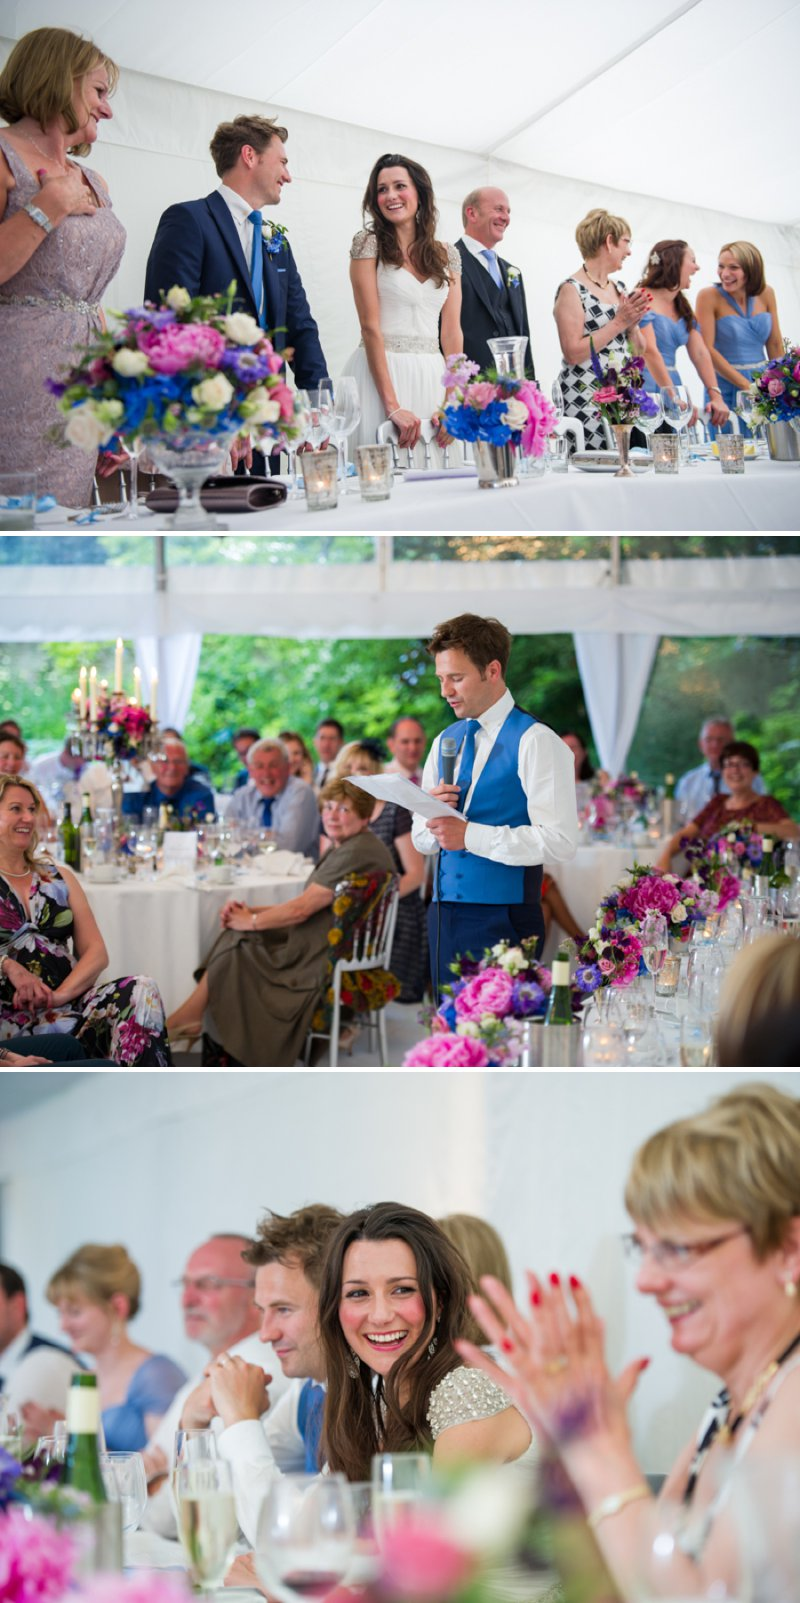 Traditional White Wedding At The Rectory In Wiltshire With Bride In Bespoke Gown And Vibrant Blue Hydrangeas And Hot Pink Peonies In Wedding Flowers 8